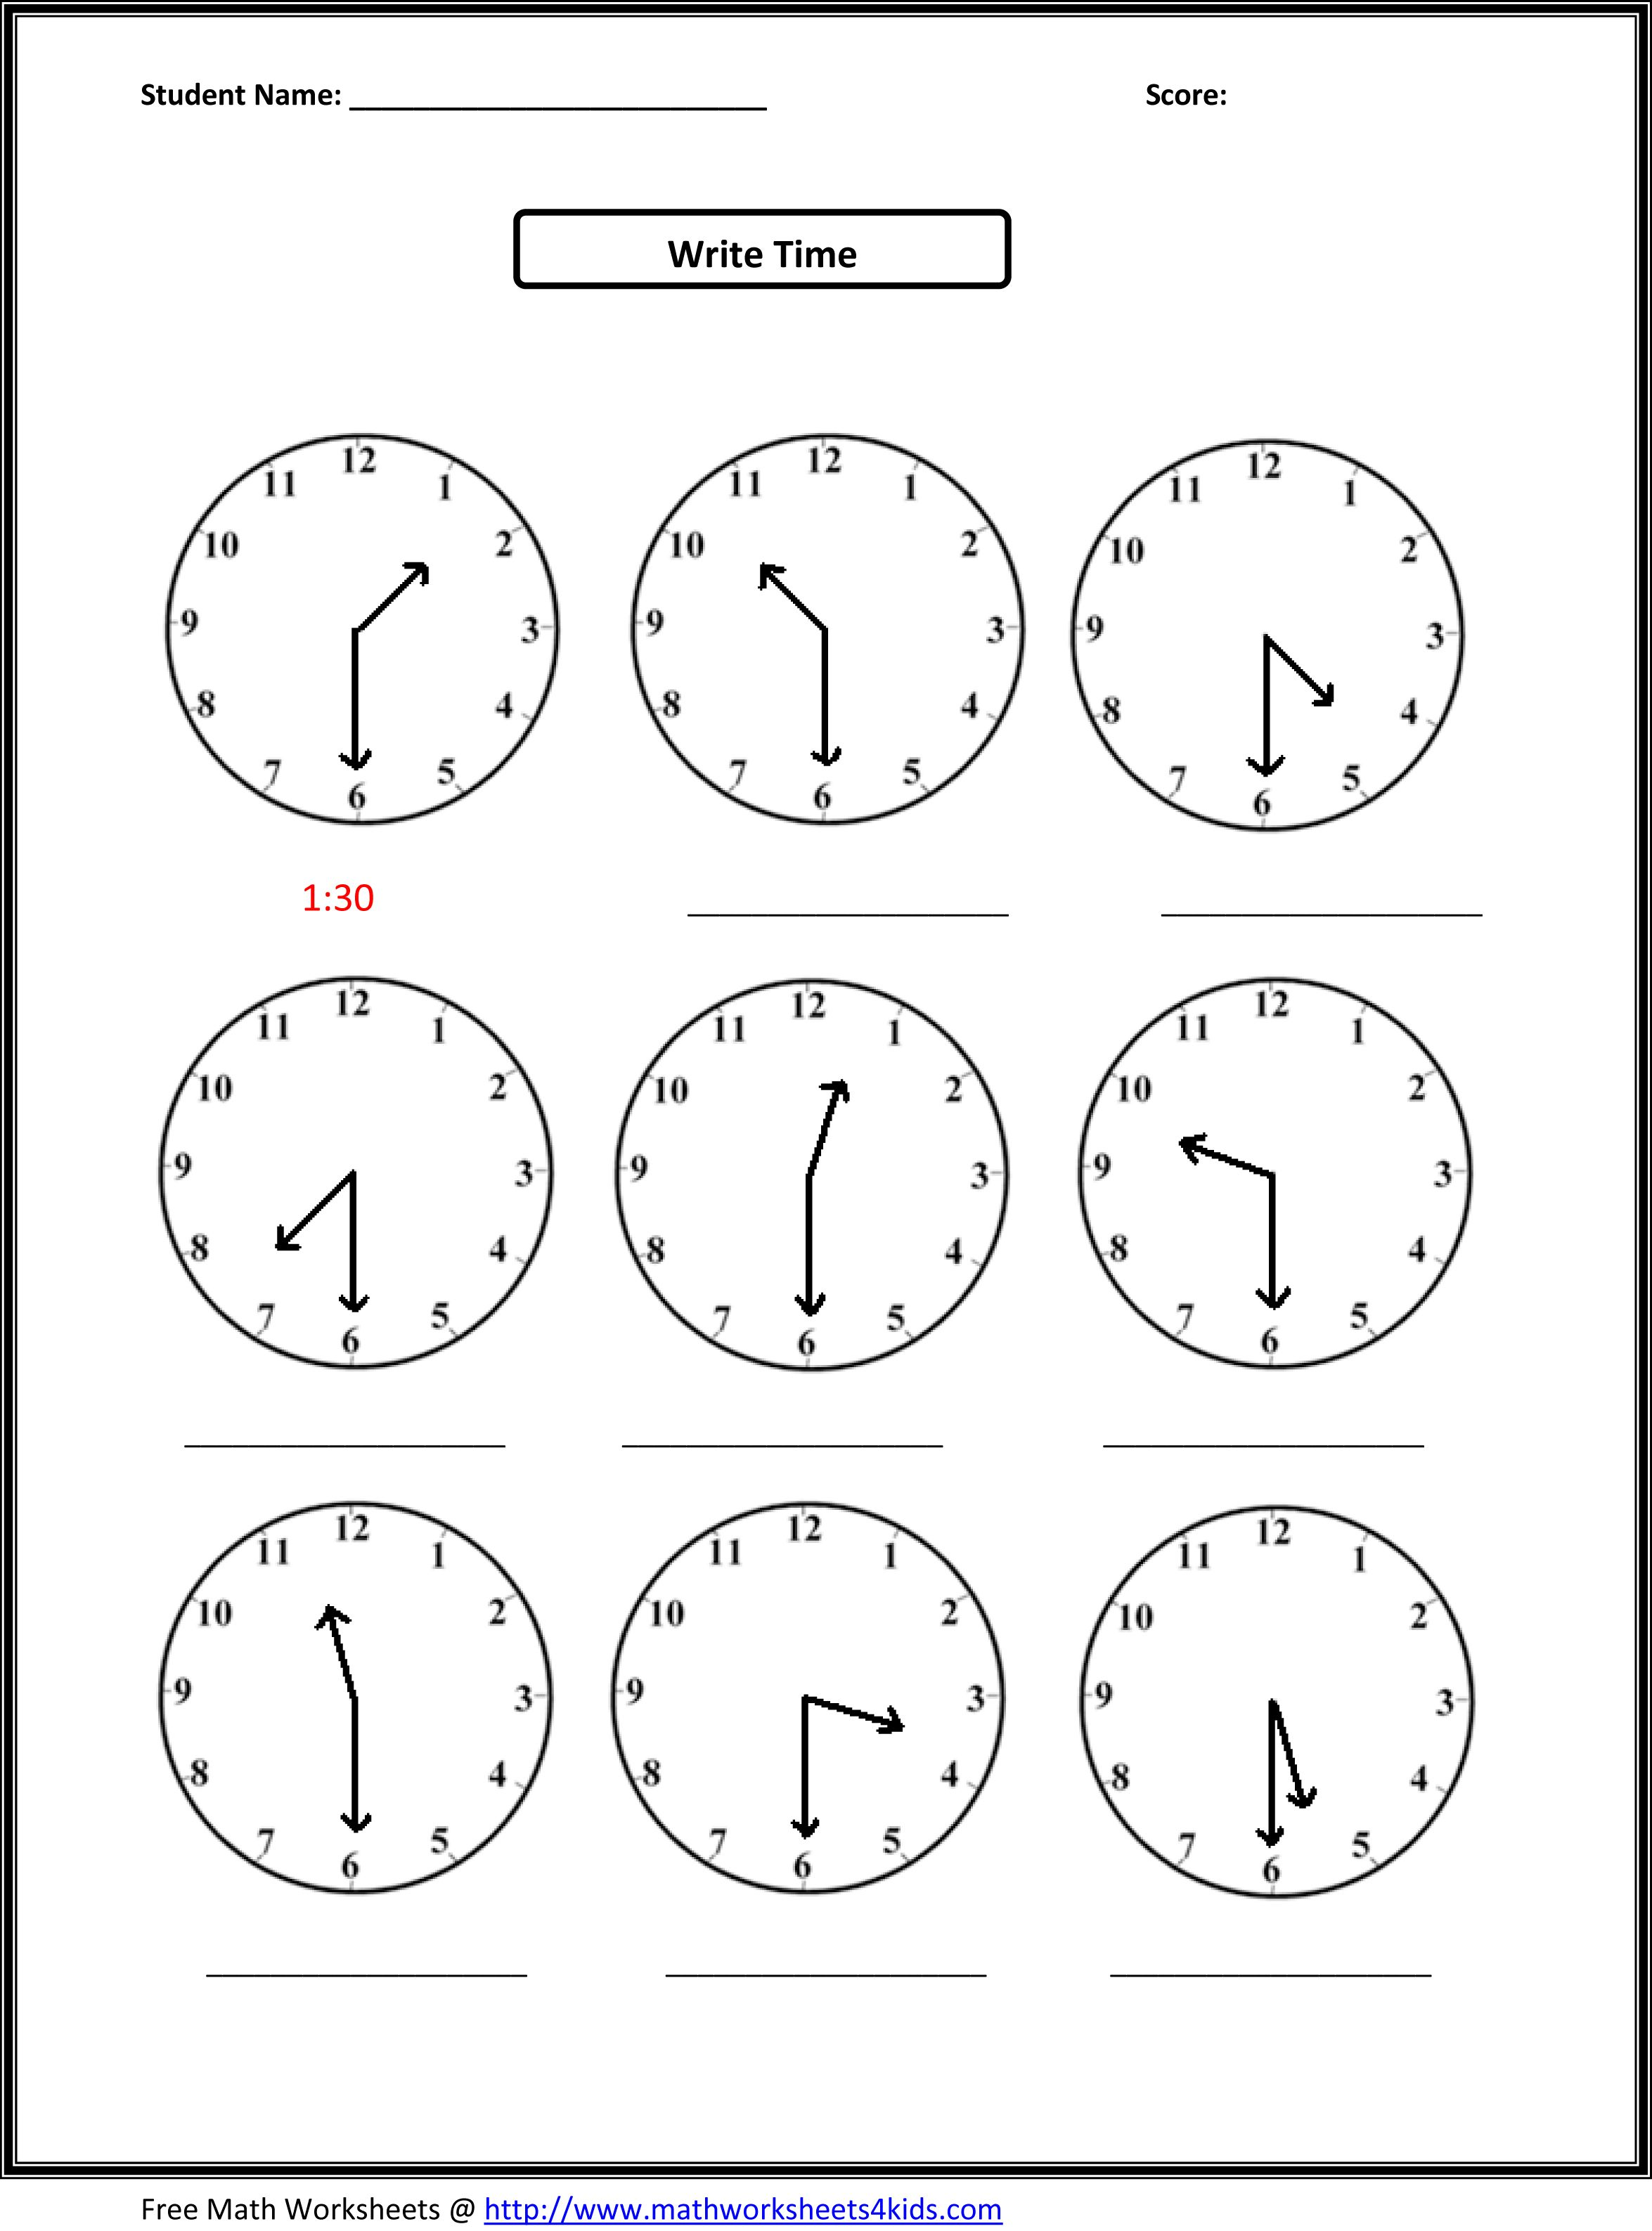 Weirdmailus  Stunning Worksheet On Time For Grade   Reocurent With Foxy Free Printable Telling Time Worksheets Nd Grade  Reocurent With Astonishing Addition Subtraction Worksheets Third Grade Also Adding By  Worksheets In Addition Animal Habitat Worksheets For Kindergarten And Percents Worksheets Grade  As Well As Irregular Preterite Practice Worksheets Additionally Line Worksheet From Reocurentcom With Weirdmailus  Foxy Worksheet On Time For Grade   Reocurent With Astonishing Free Printable Telling Time Worksheets Nd Grade  Reocurent And Stunning Addition Subtraction Worksheets Third Grade Also Adding By  Worksheets In Addition Animal Habitat Worksheets For Kindergarten From Reocurentcom